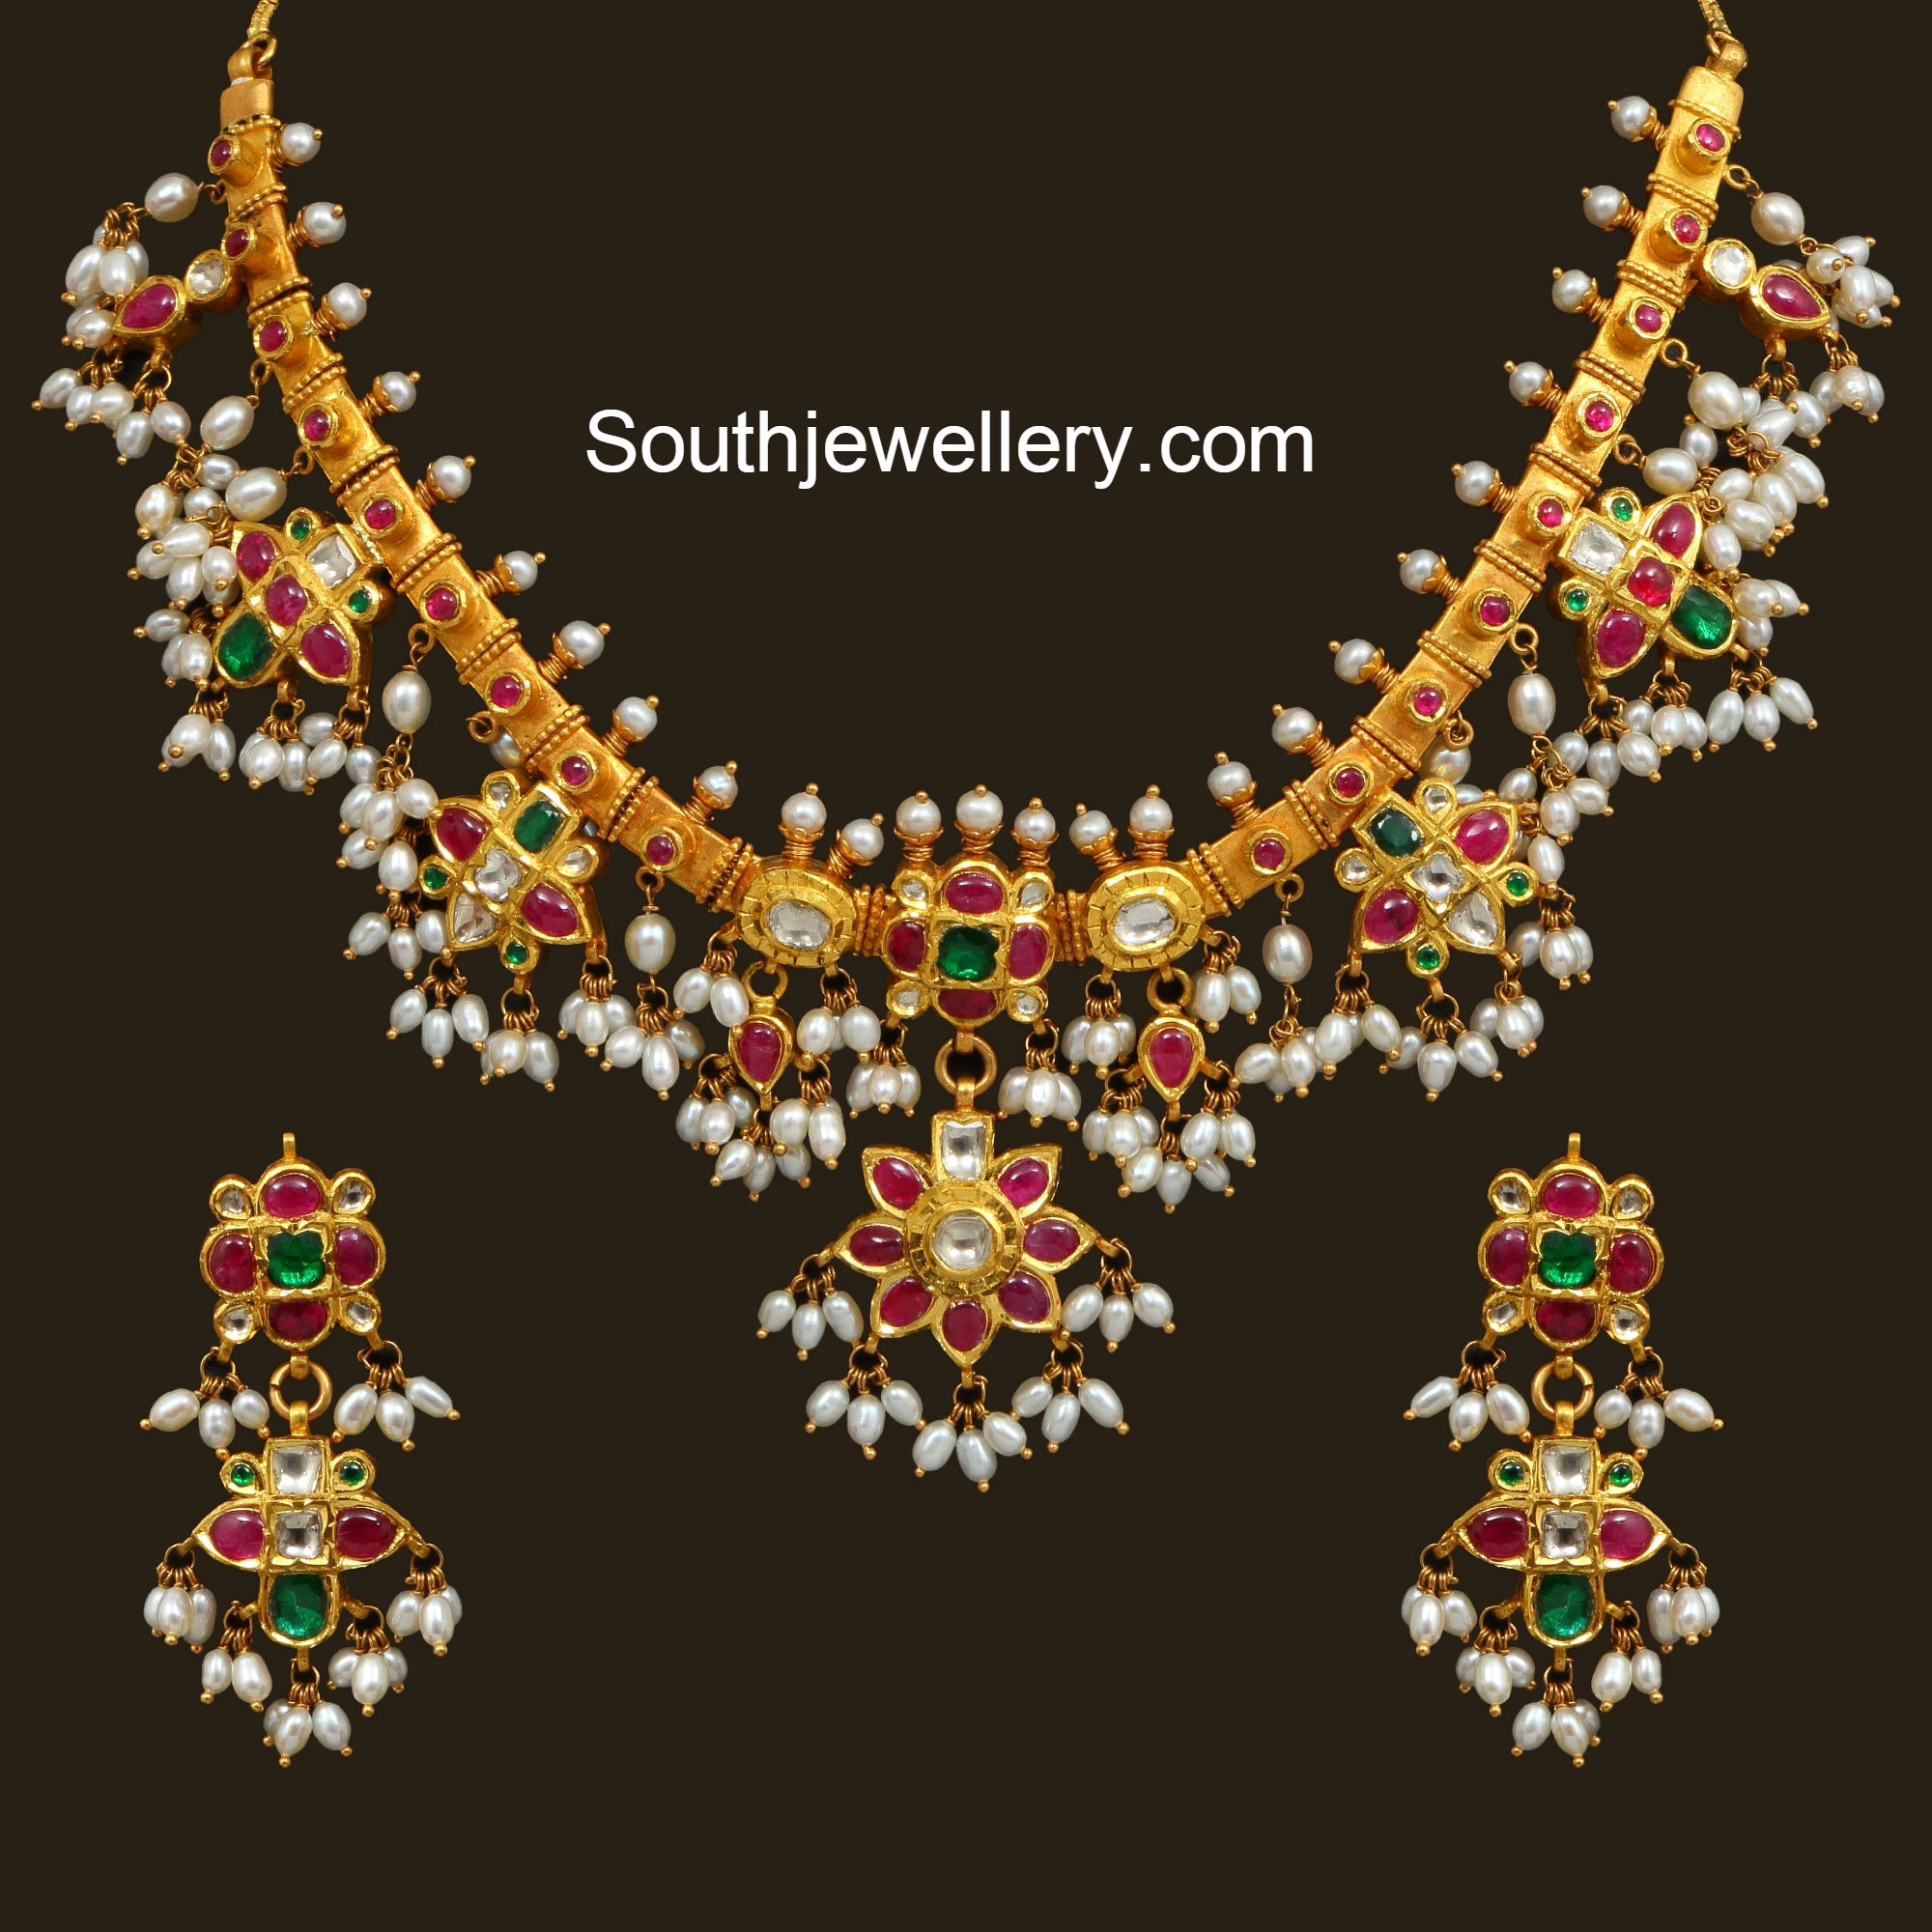 Pearl fashion necklaces